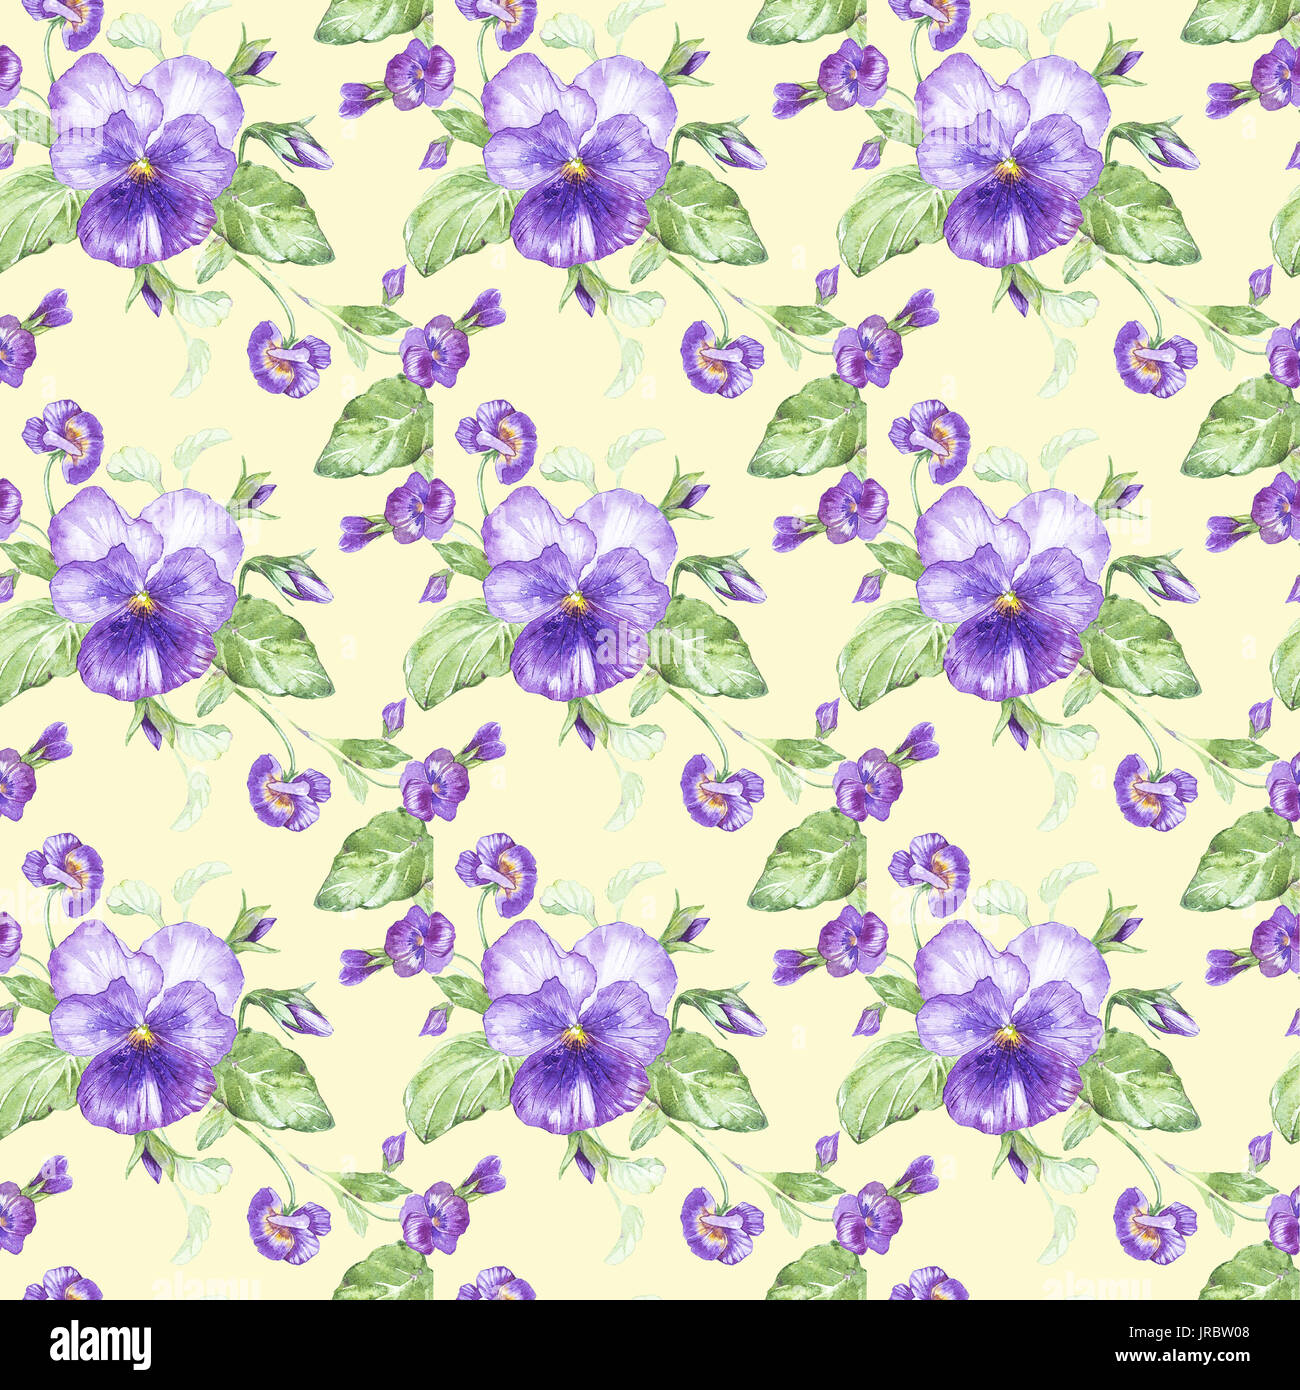 Illustration in watercolor of a pansy flower. Floral card with flowers. Botanical illustration seamless pattern. Stock Photo